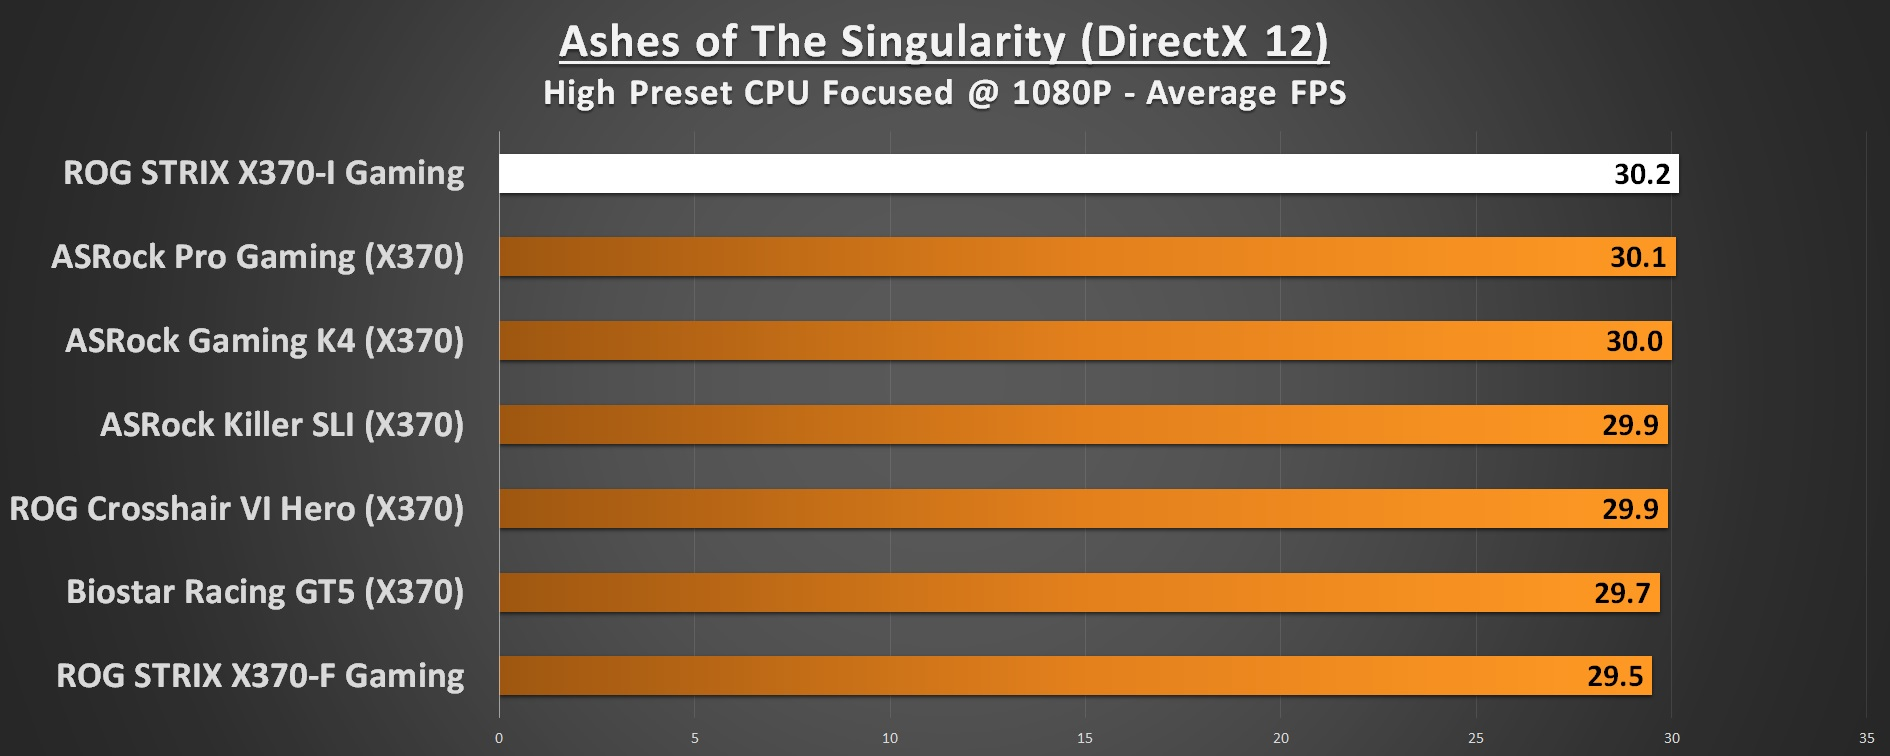 ASUS ROG STRIX X370-I Performance Ashes of The Singularity 1080p DirectX 12